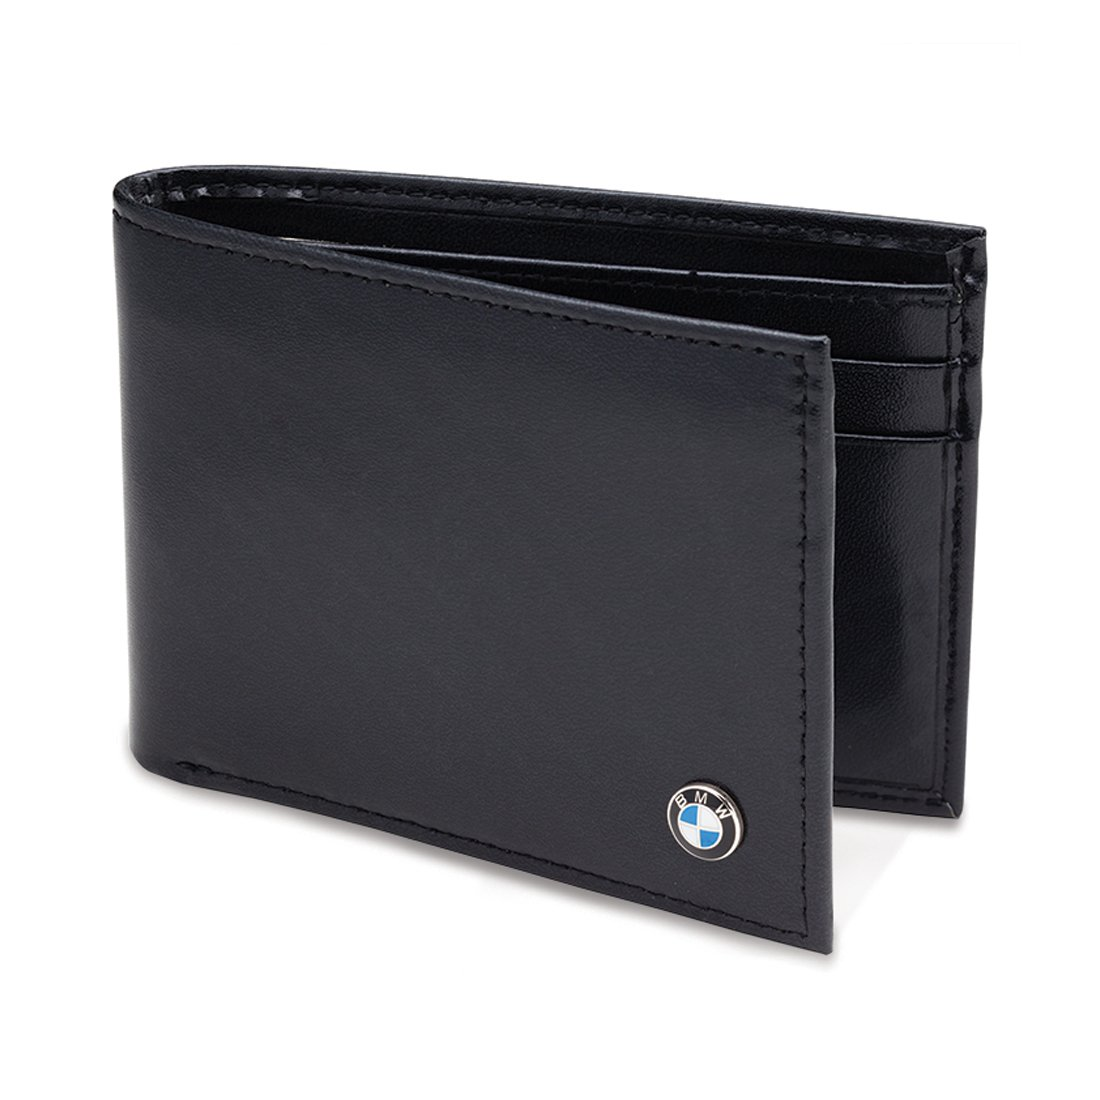 BMW Small Men's Wallet